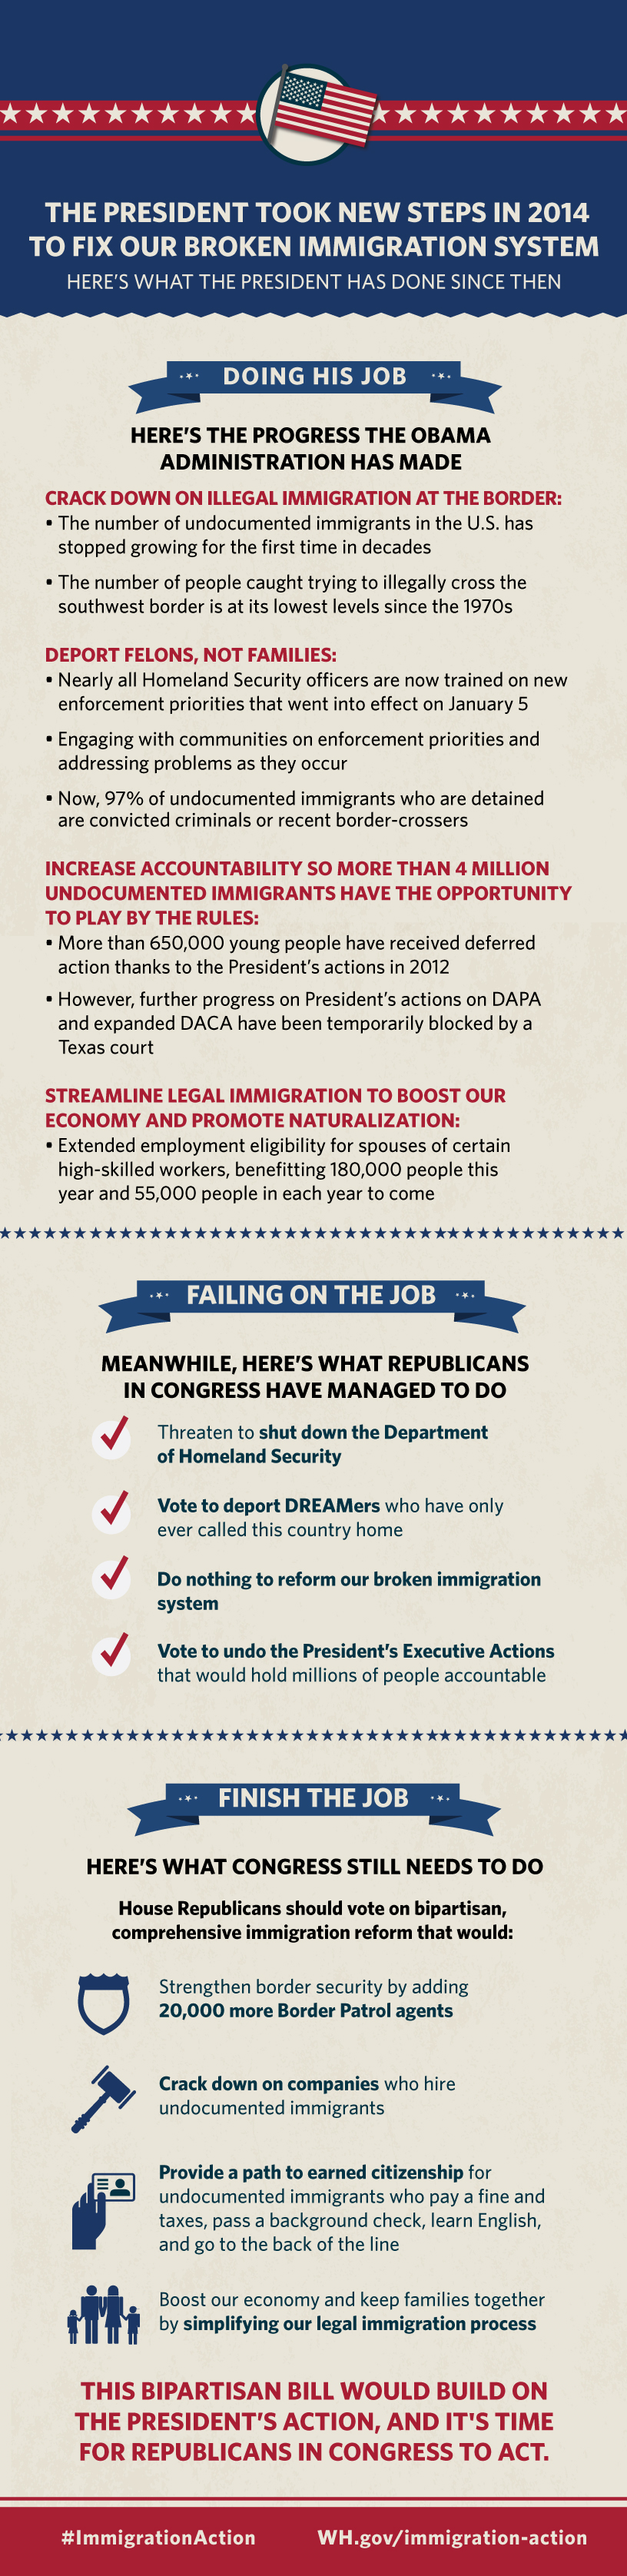 President Obama Is Taking Steps to Fix Our Broken Immigration System